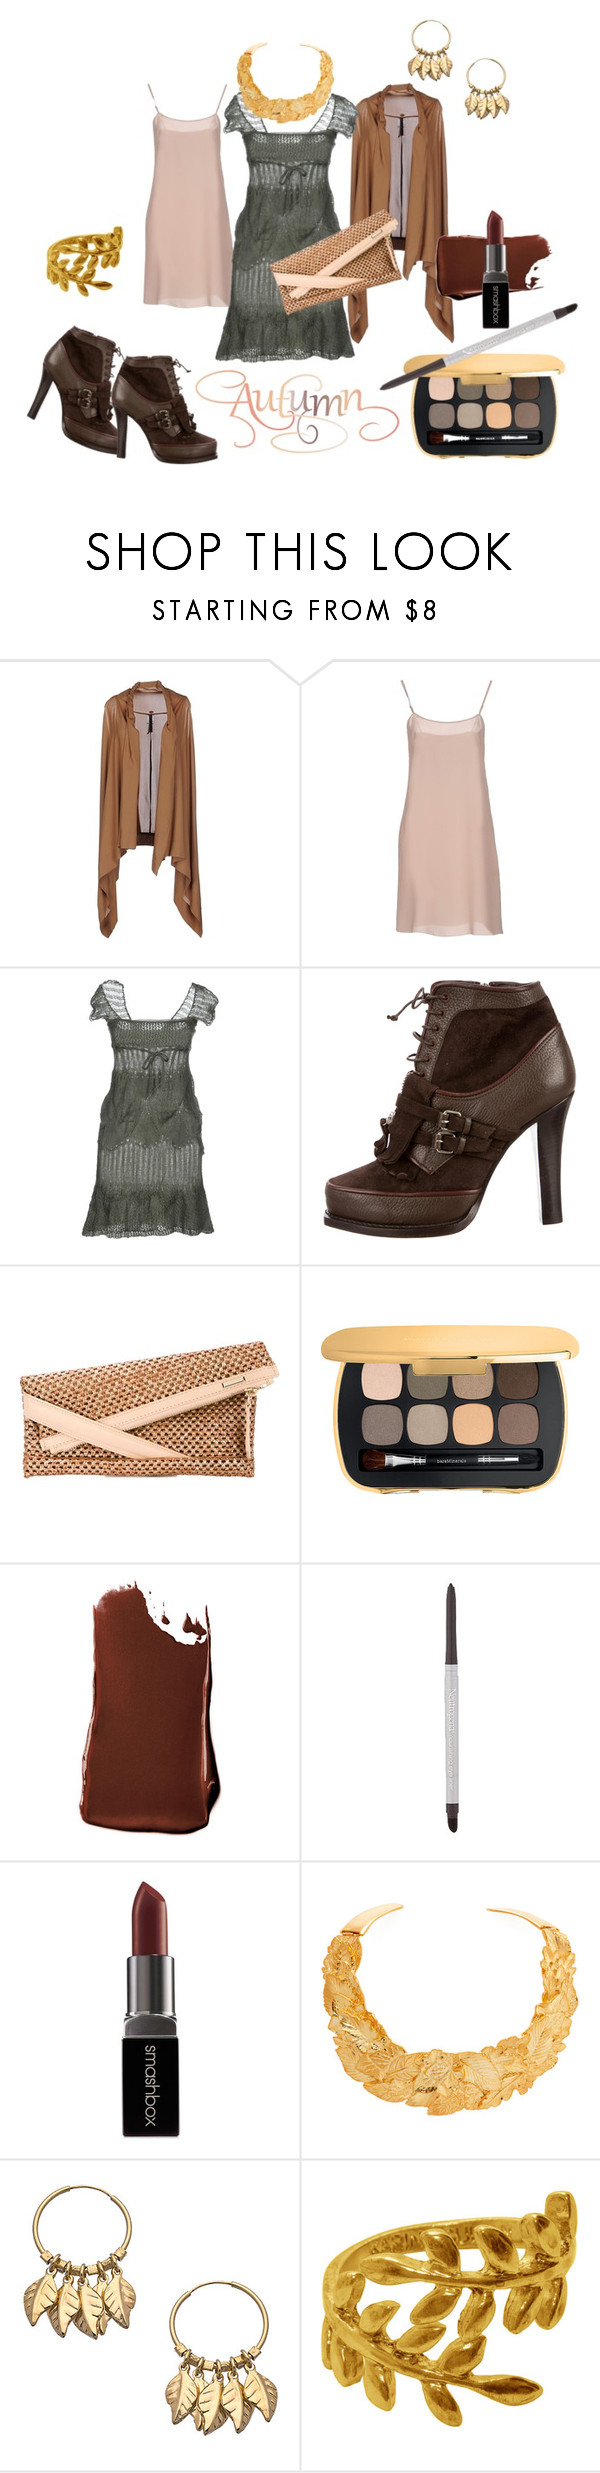 """""""Here Comes Autumn '16"""" by clothingcollector1 ❤ liked on Polyvore featuring Manila Grace, Schumacher, Ermanno by Ermanno Scervino, Tabitha Simmons, Zanellato, Bare Escentuals, Smashbox, Neutrogena, Kenneth Jay Lane and Betty Carré"""